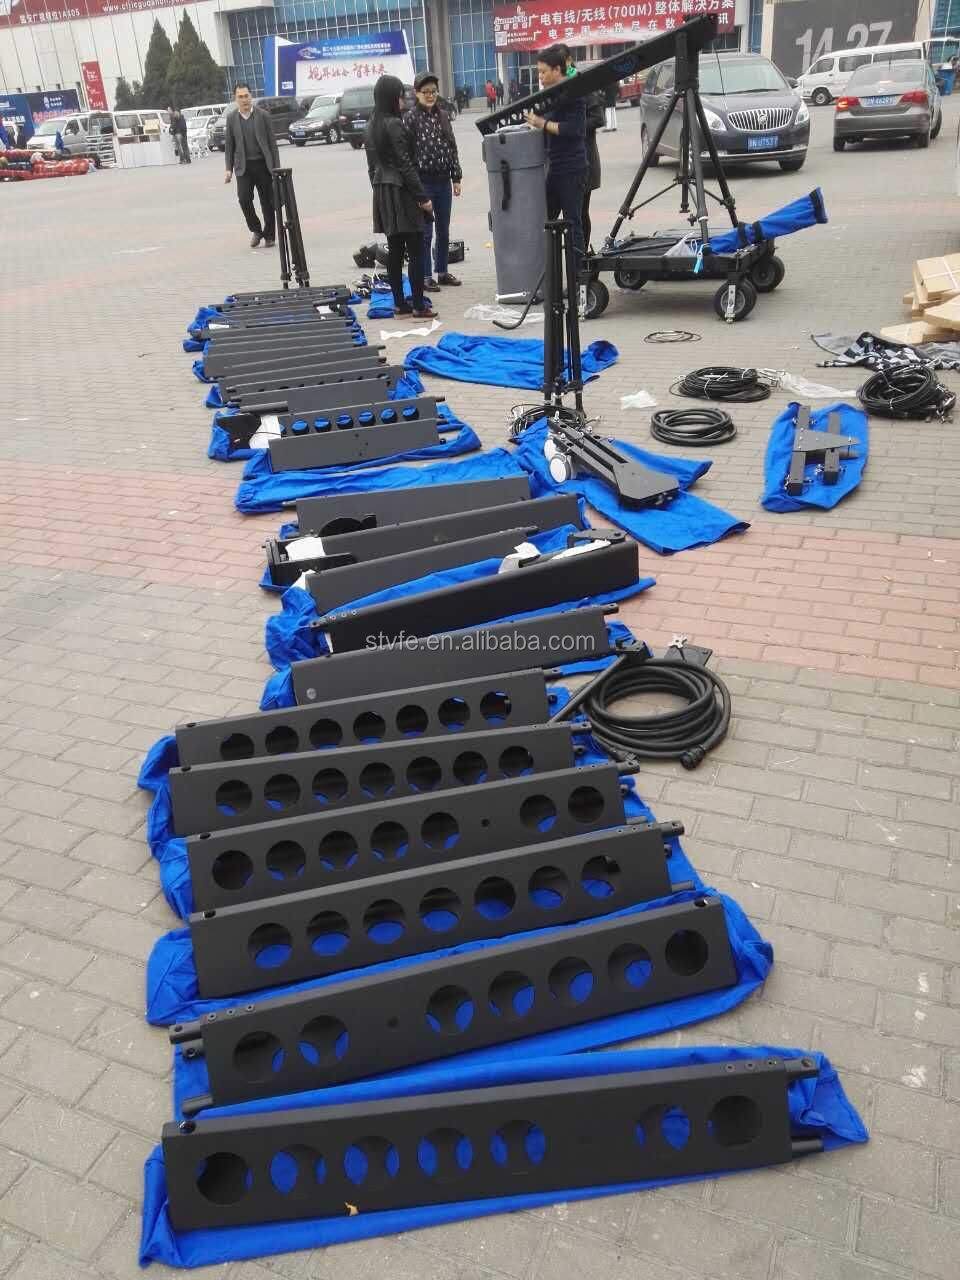 High quality professional stable camera jib crane 4 wheel dolly system 30kg payload windproof holes